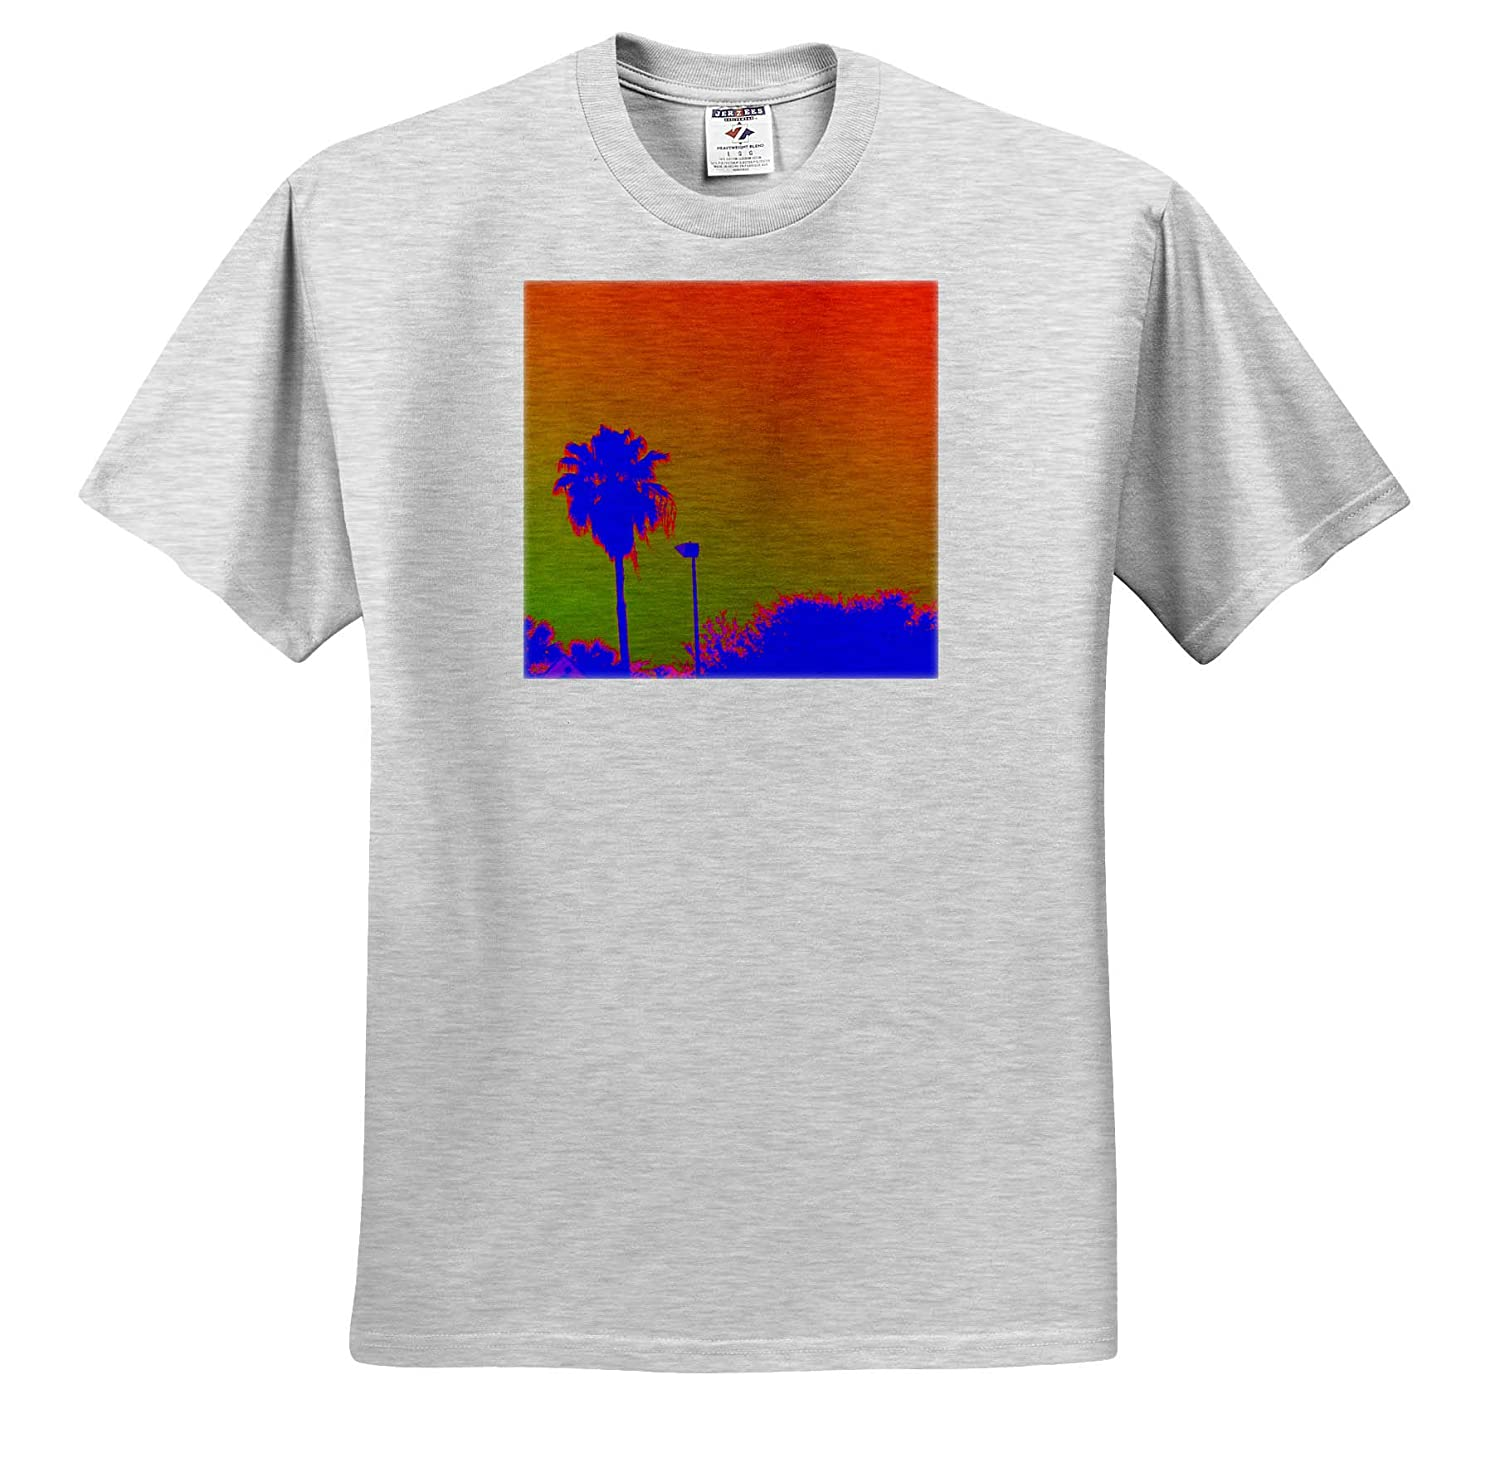 Floral and Tree Abstracts Image of Blue Neon Palm with Orange Green Sky T-Shirts 3dRose Lens Art by Florene